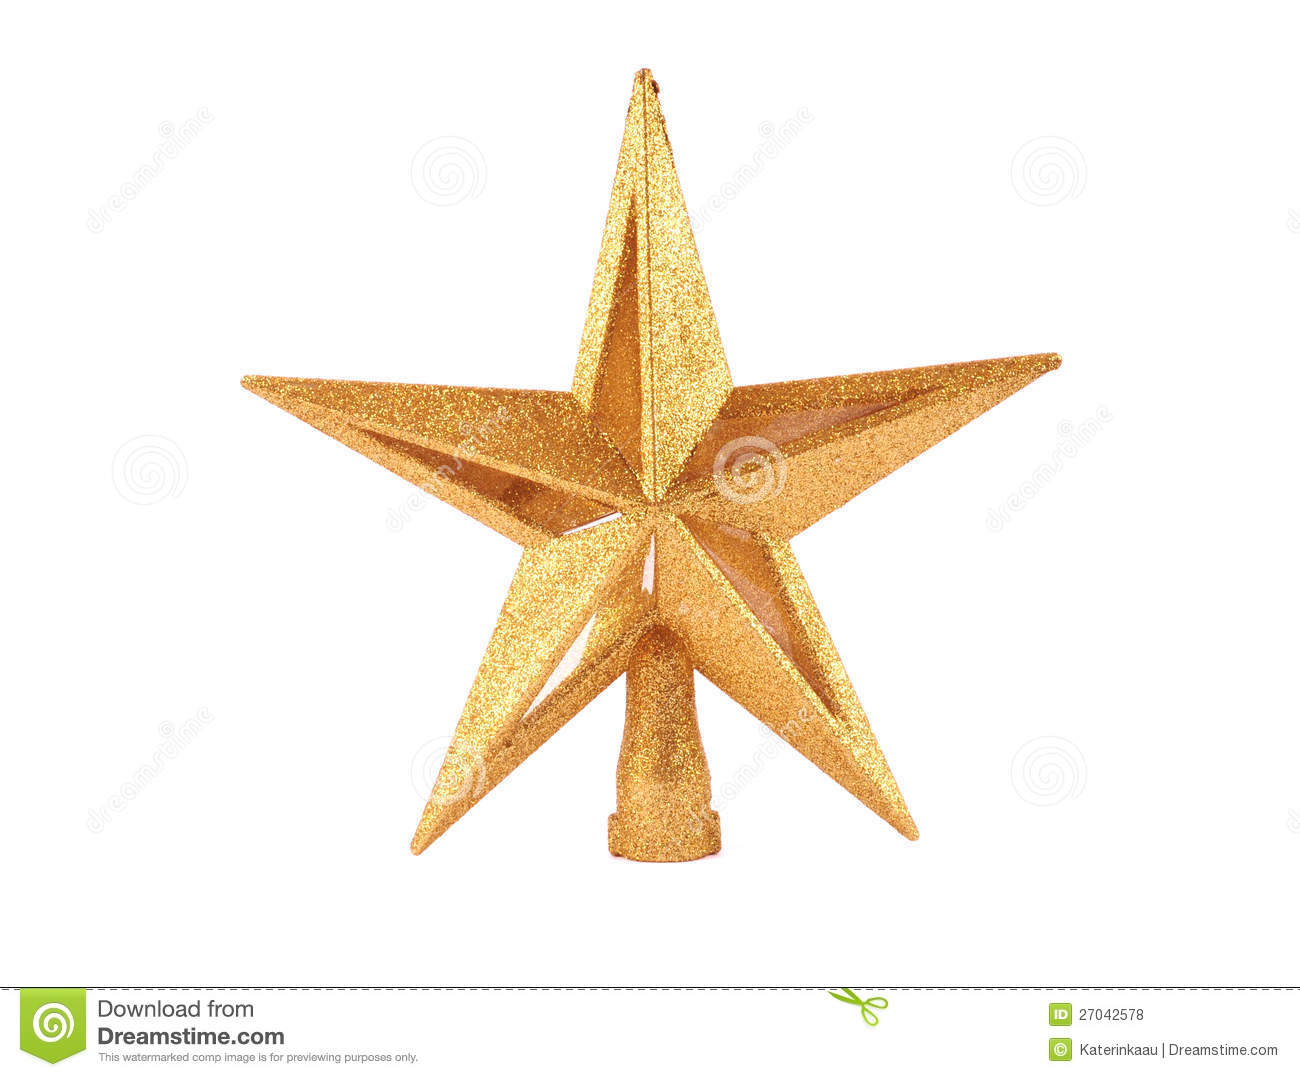 Golden Glittering Star Shaped Christmas Ornament I Royalty Free ...